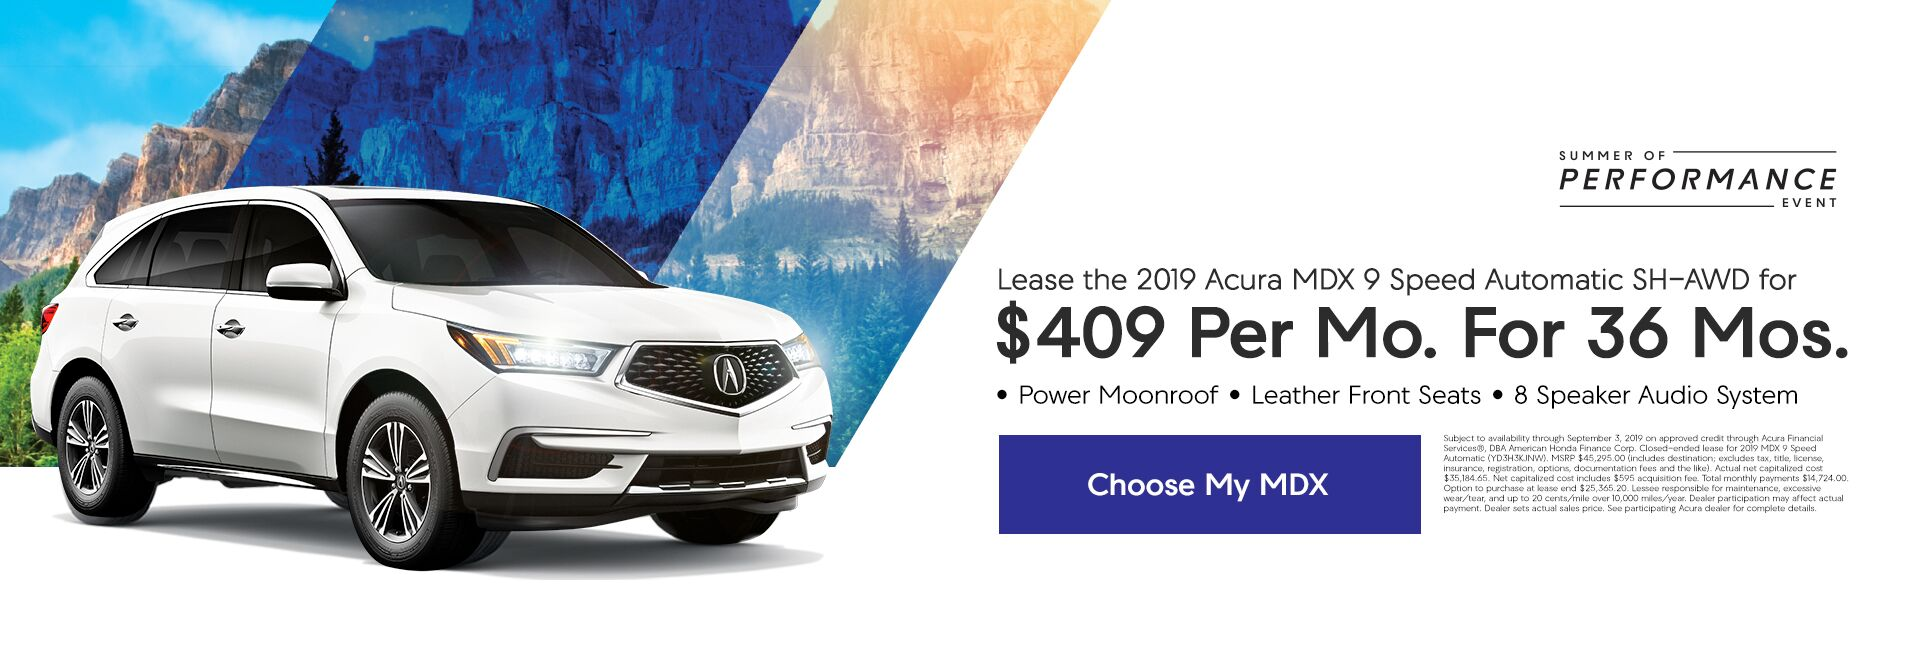 Lease the 2019 Acura MDX during the Summer of Performance Event. Expires 9/3/19